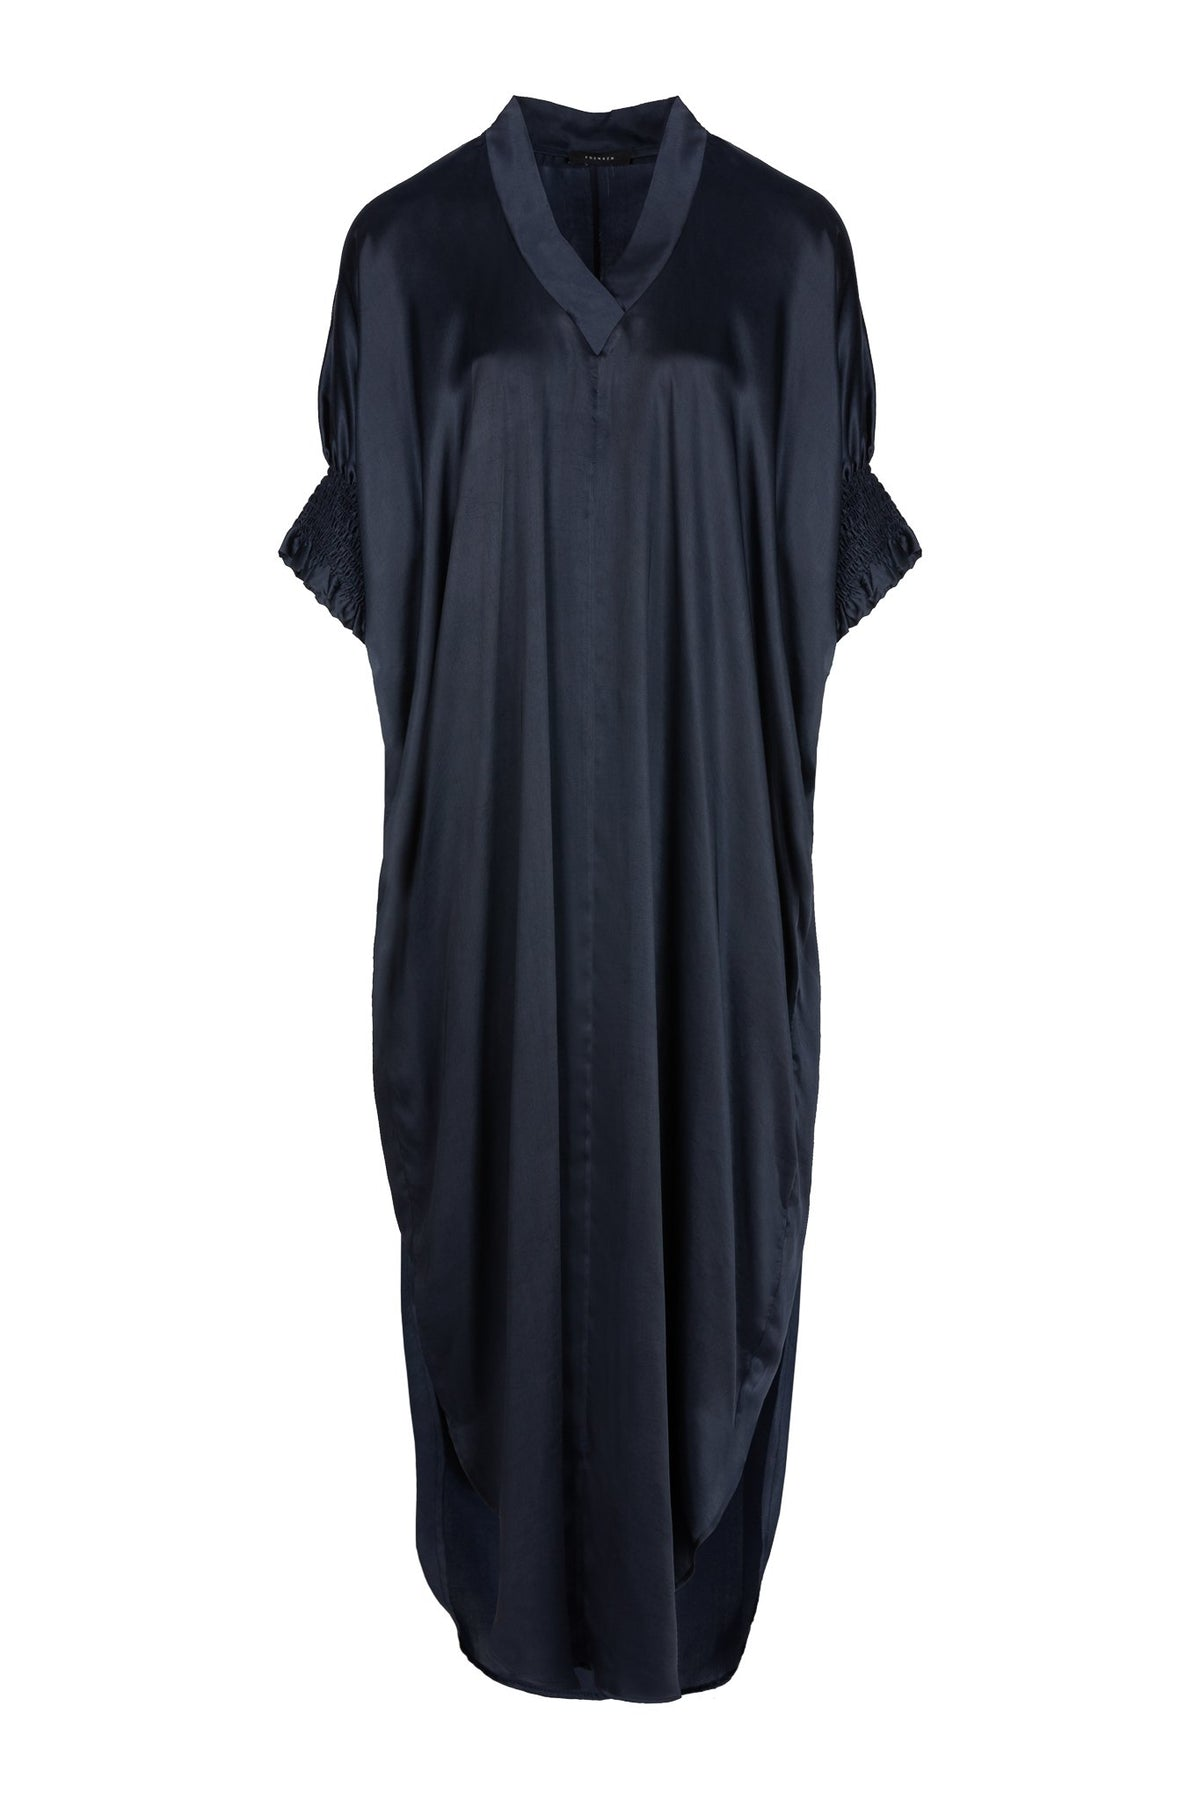 Dagger | Dress | Navy